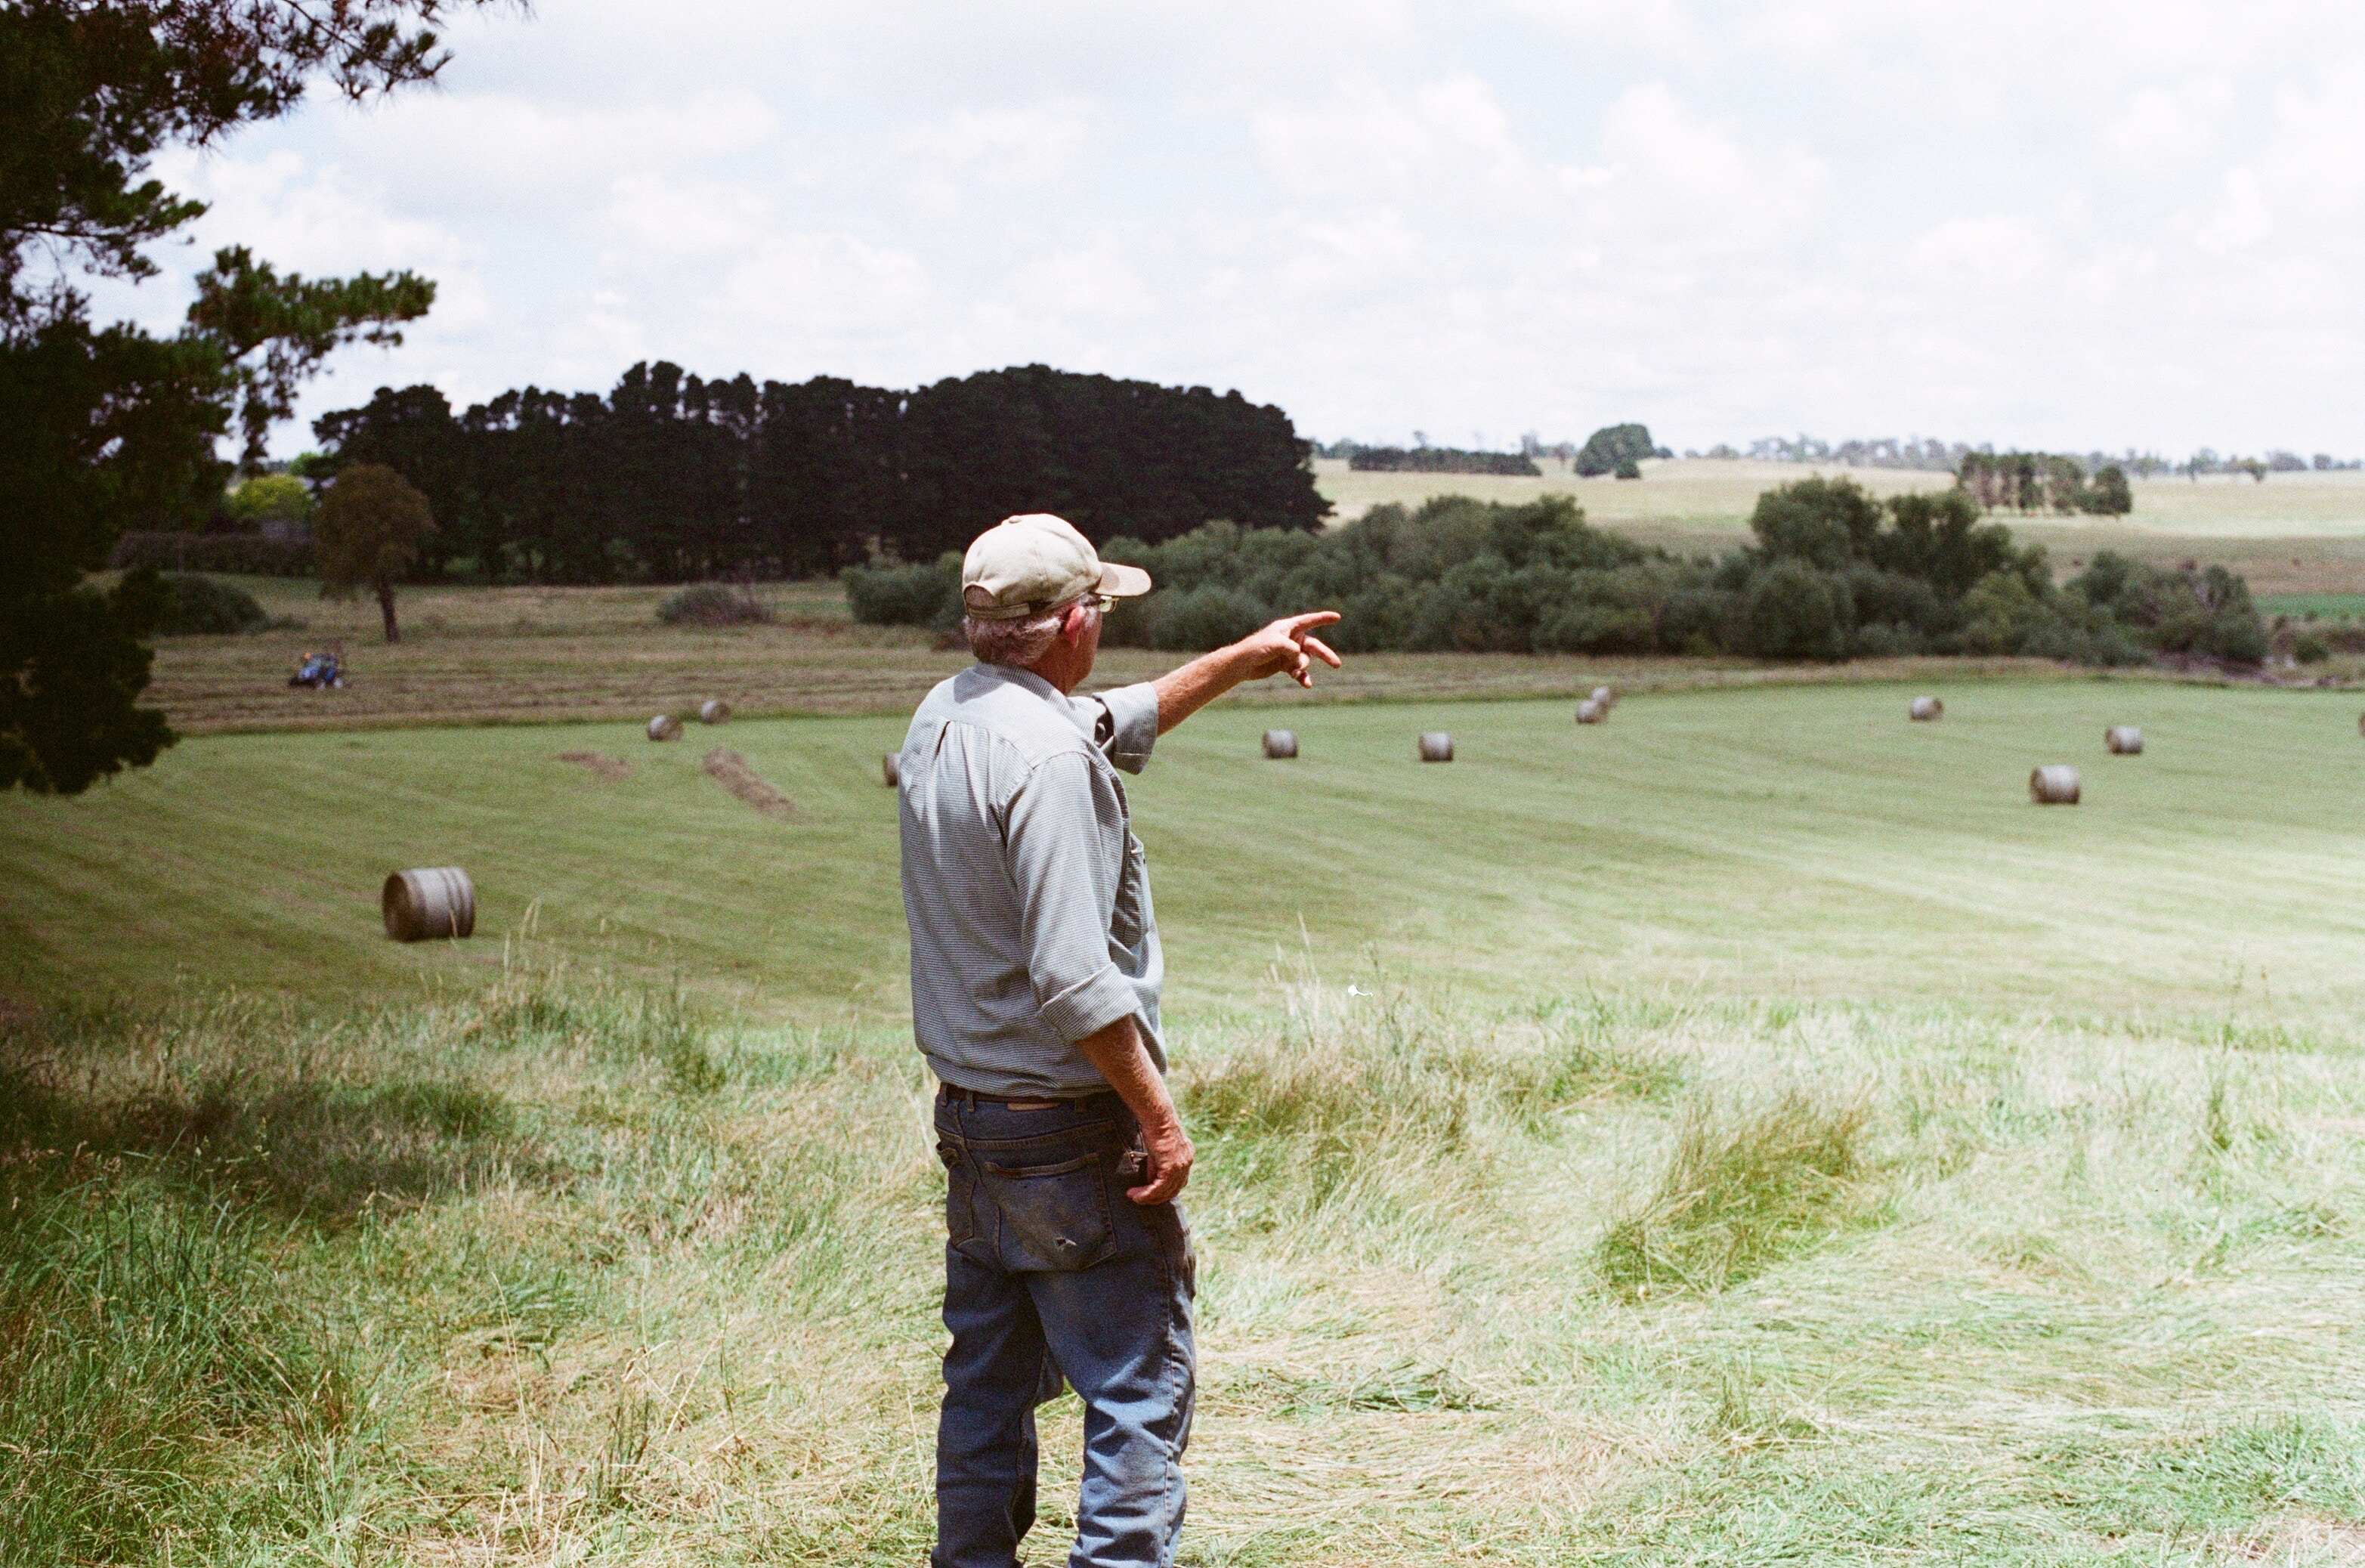 Semtech's LoRa Technology Used by NNNCo to Develop Rural IoT Network for Australia's Farmers